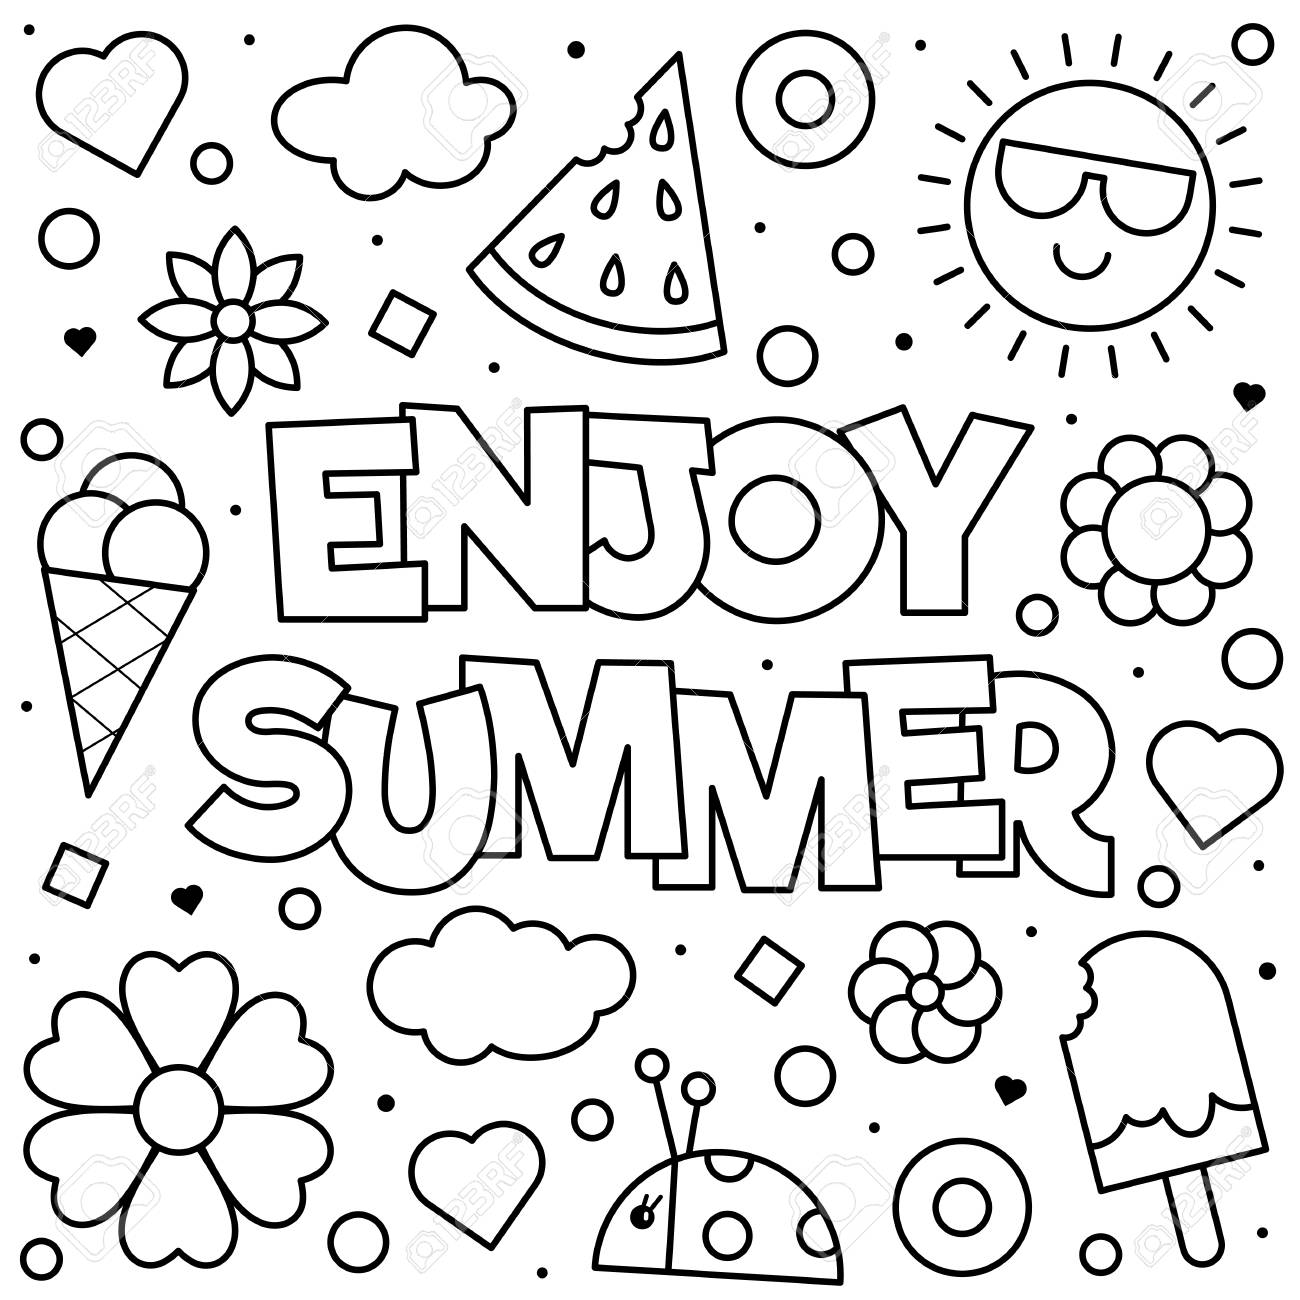 Enjoy Summer. Coloring page. Black and white vector illustration